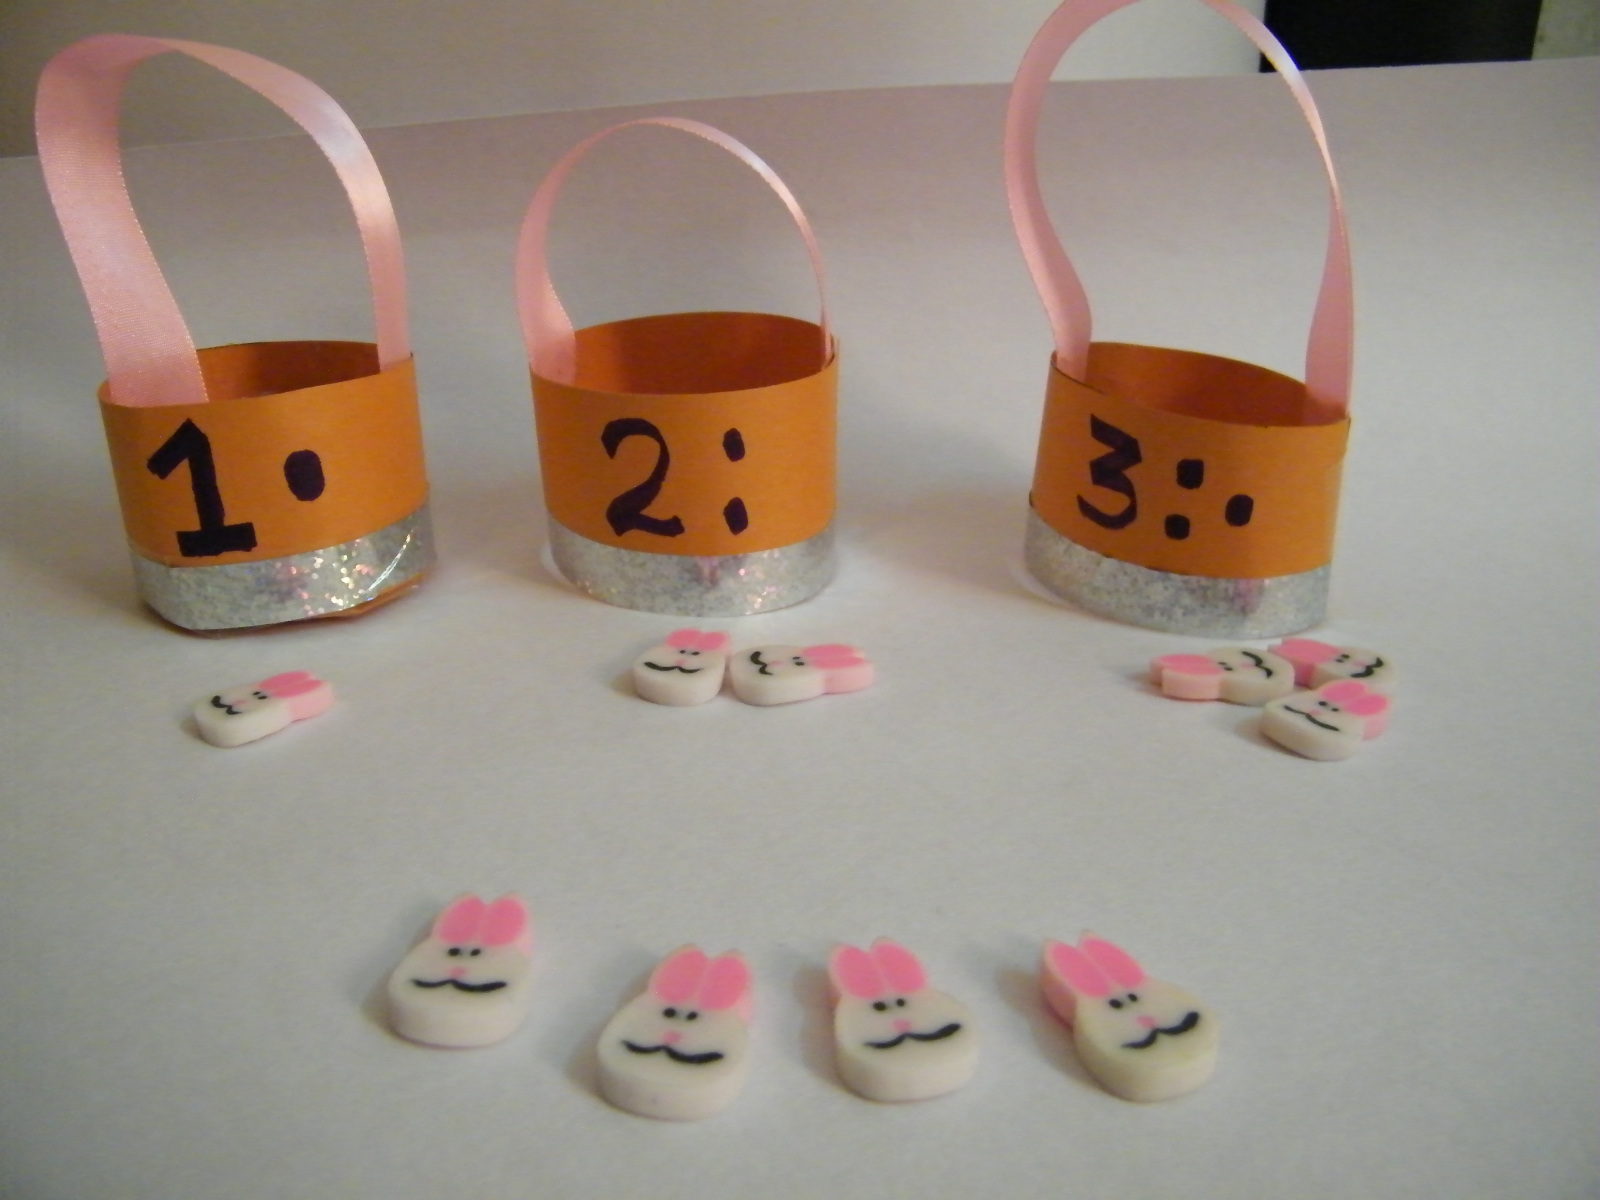 Make Easter Counting Game Craft Activities for Preschoolers